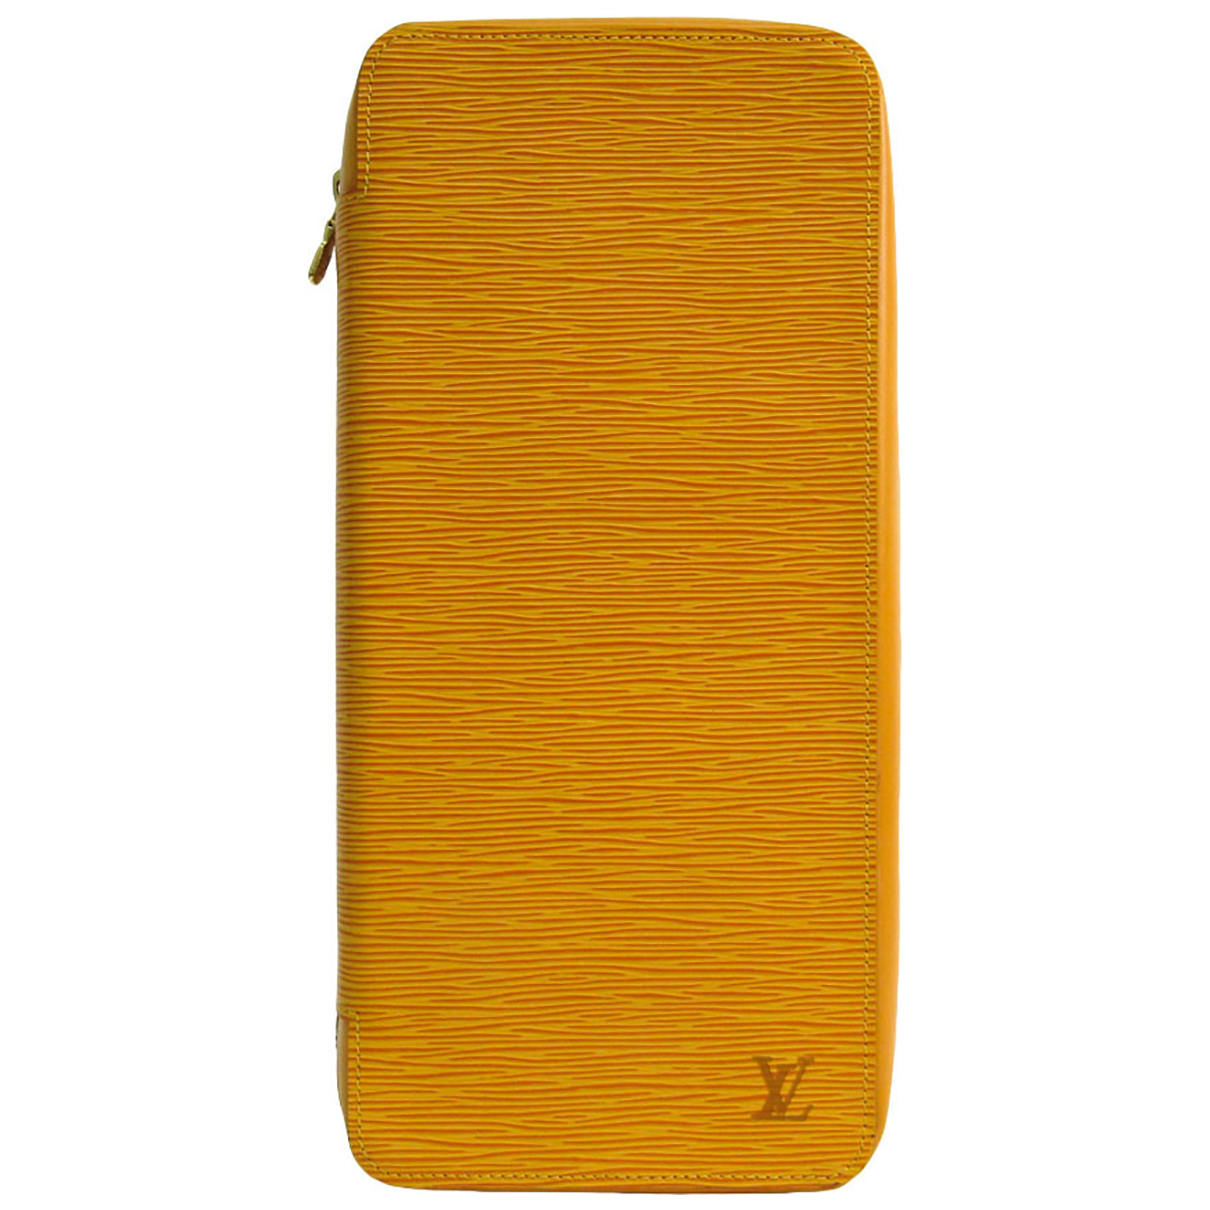 Louis Vuitton N Yellow Leather Purses, wallet & cases for Women N